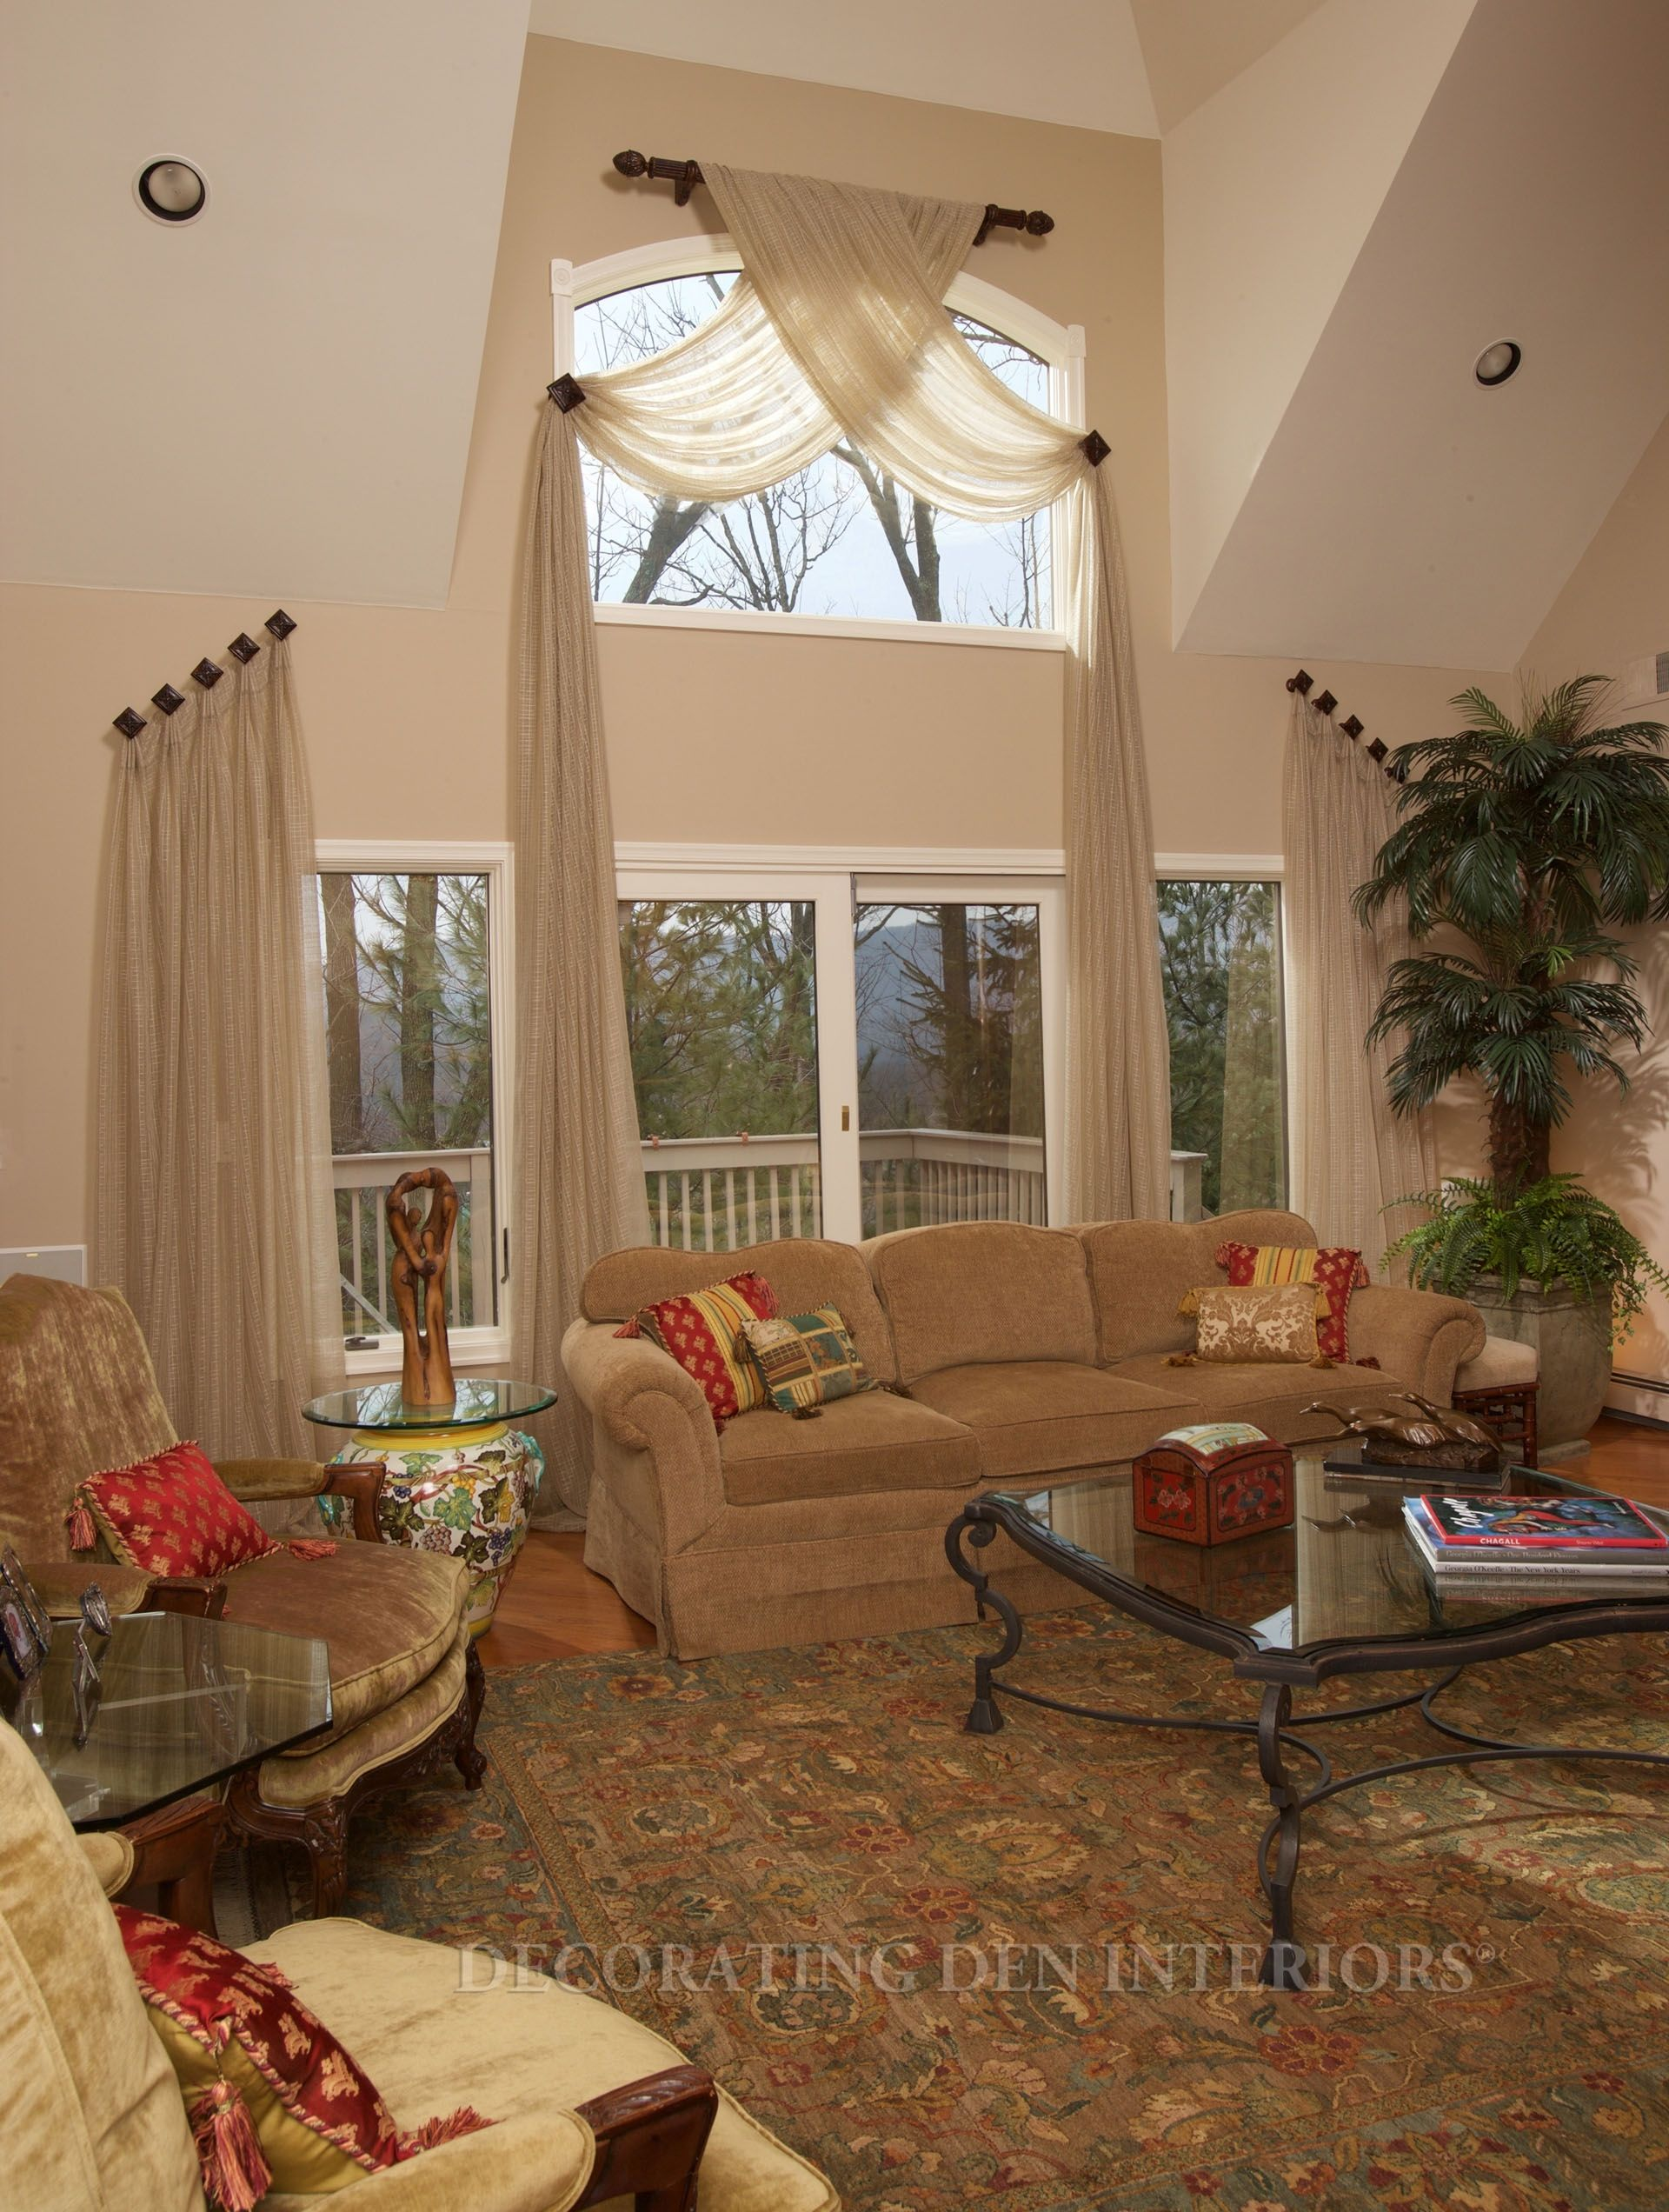 Window treatment ideas for arched windows  pin by eve verran on curtainsdiy  pinterest  dream rooms window